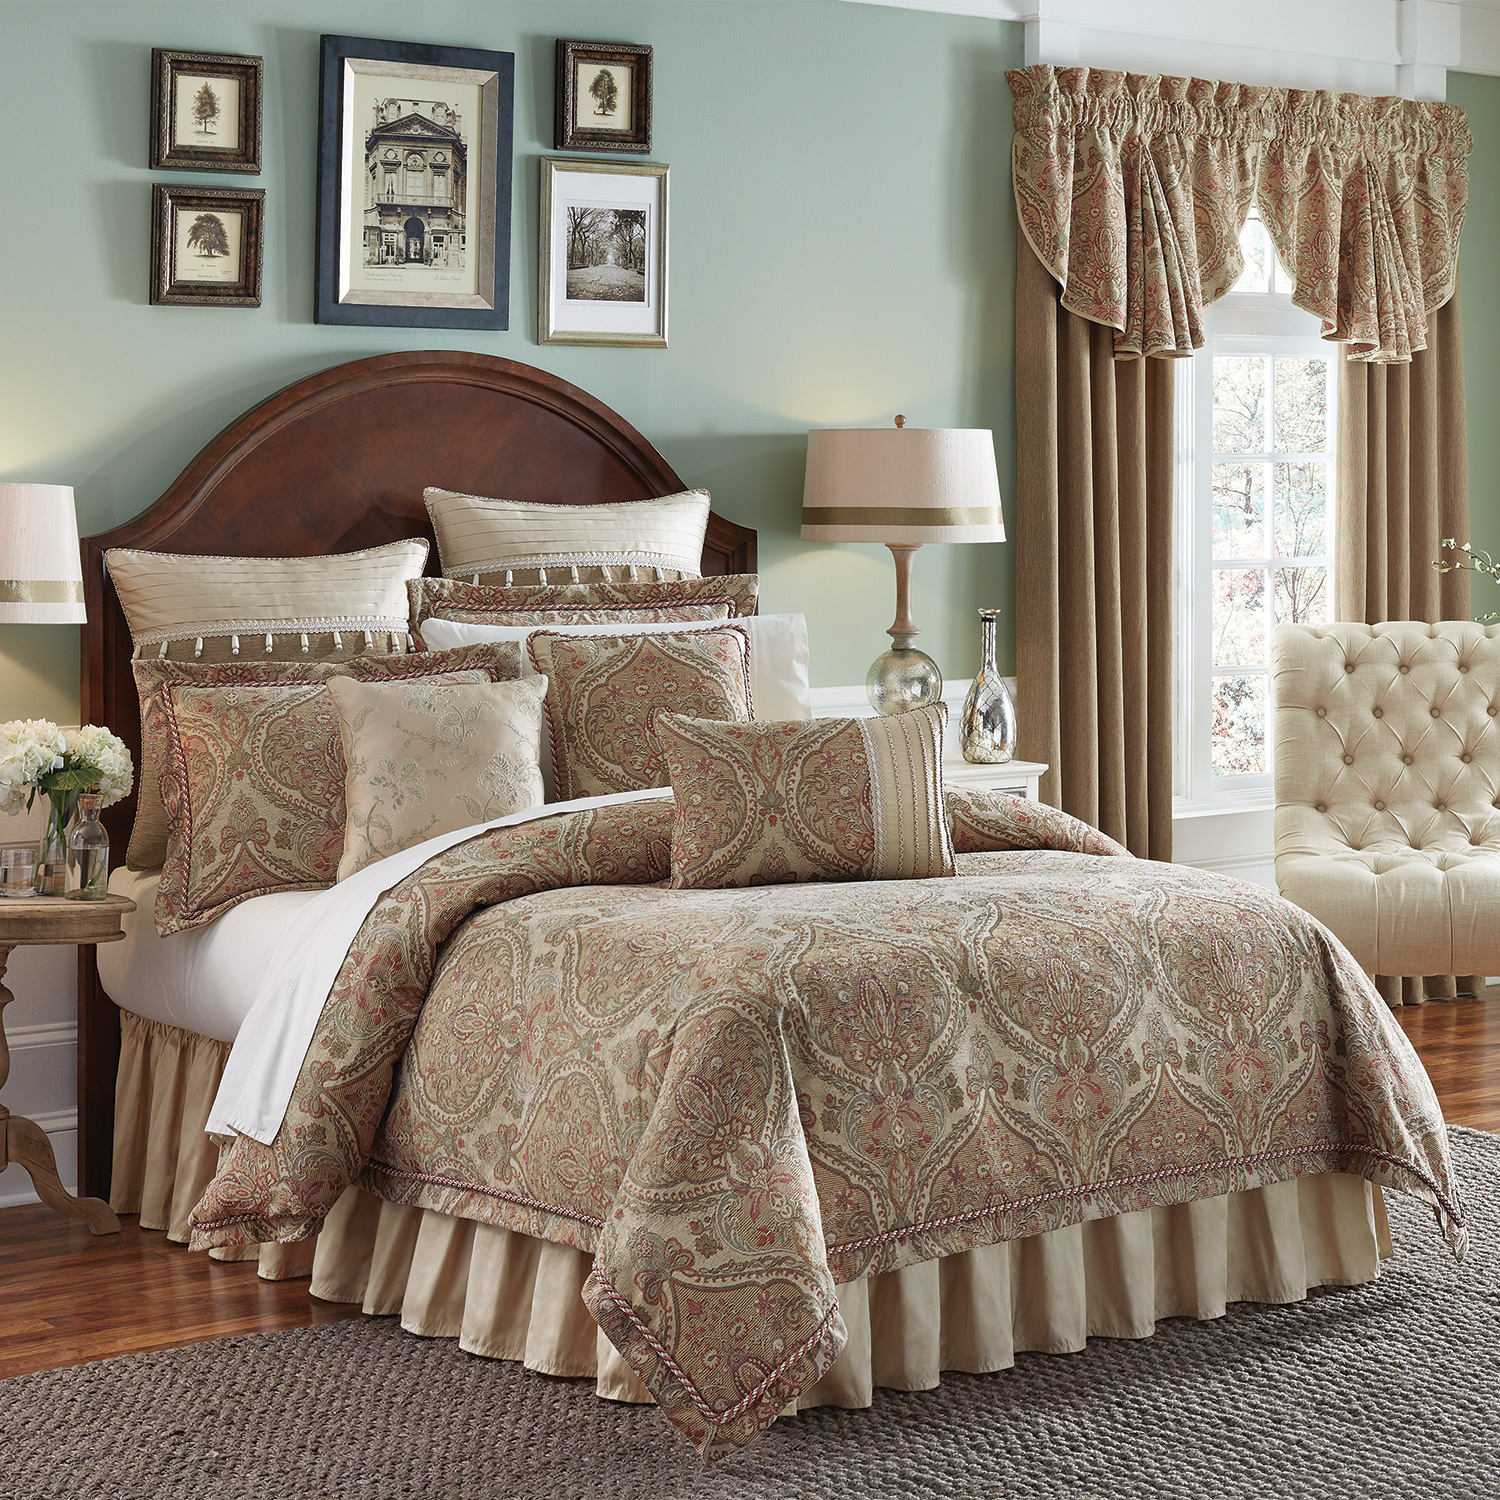 Birmingham by croscill home fashions for Designer linens and home fashions